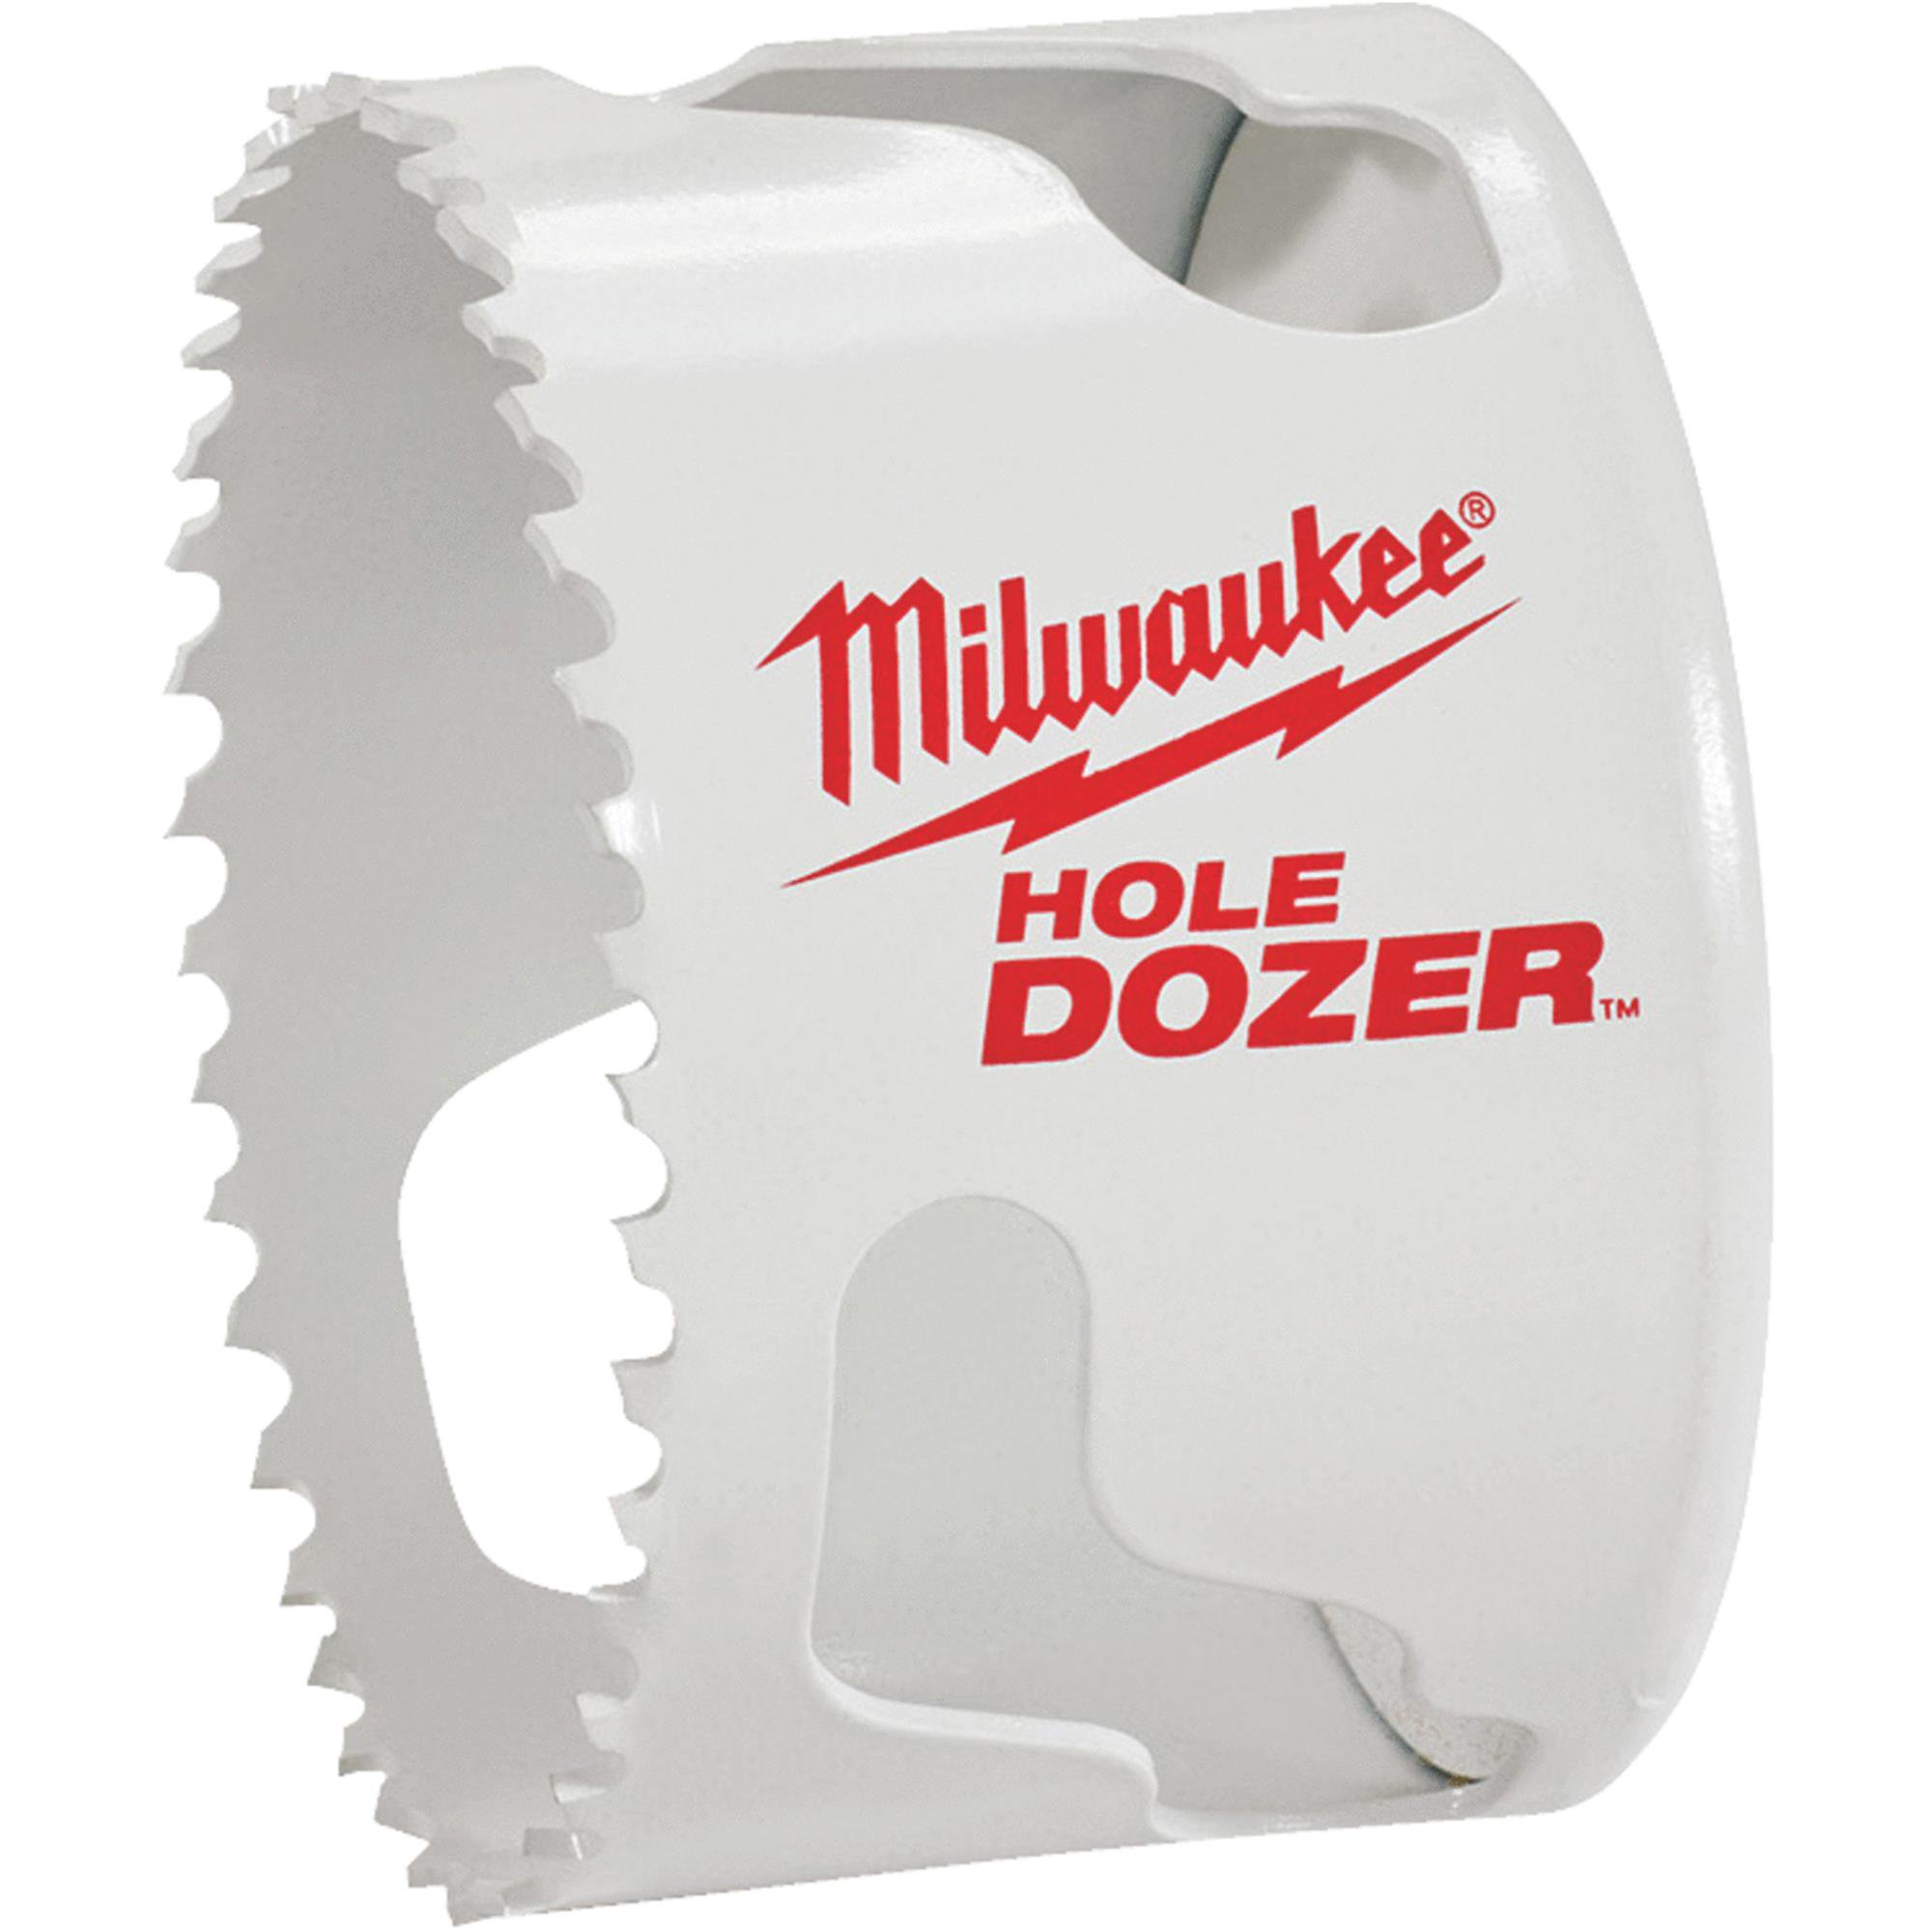 "MILWAUKEE ELEC TOOL Hole Dozer Hole Saw 2-5/8"" 49-56-0158"